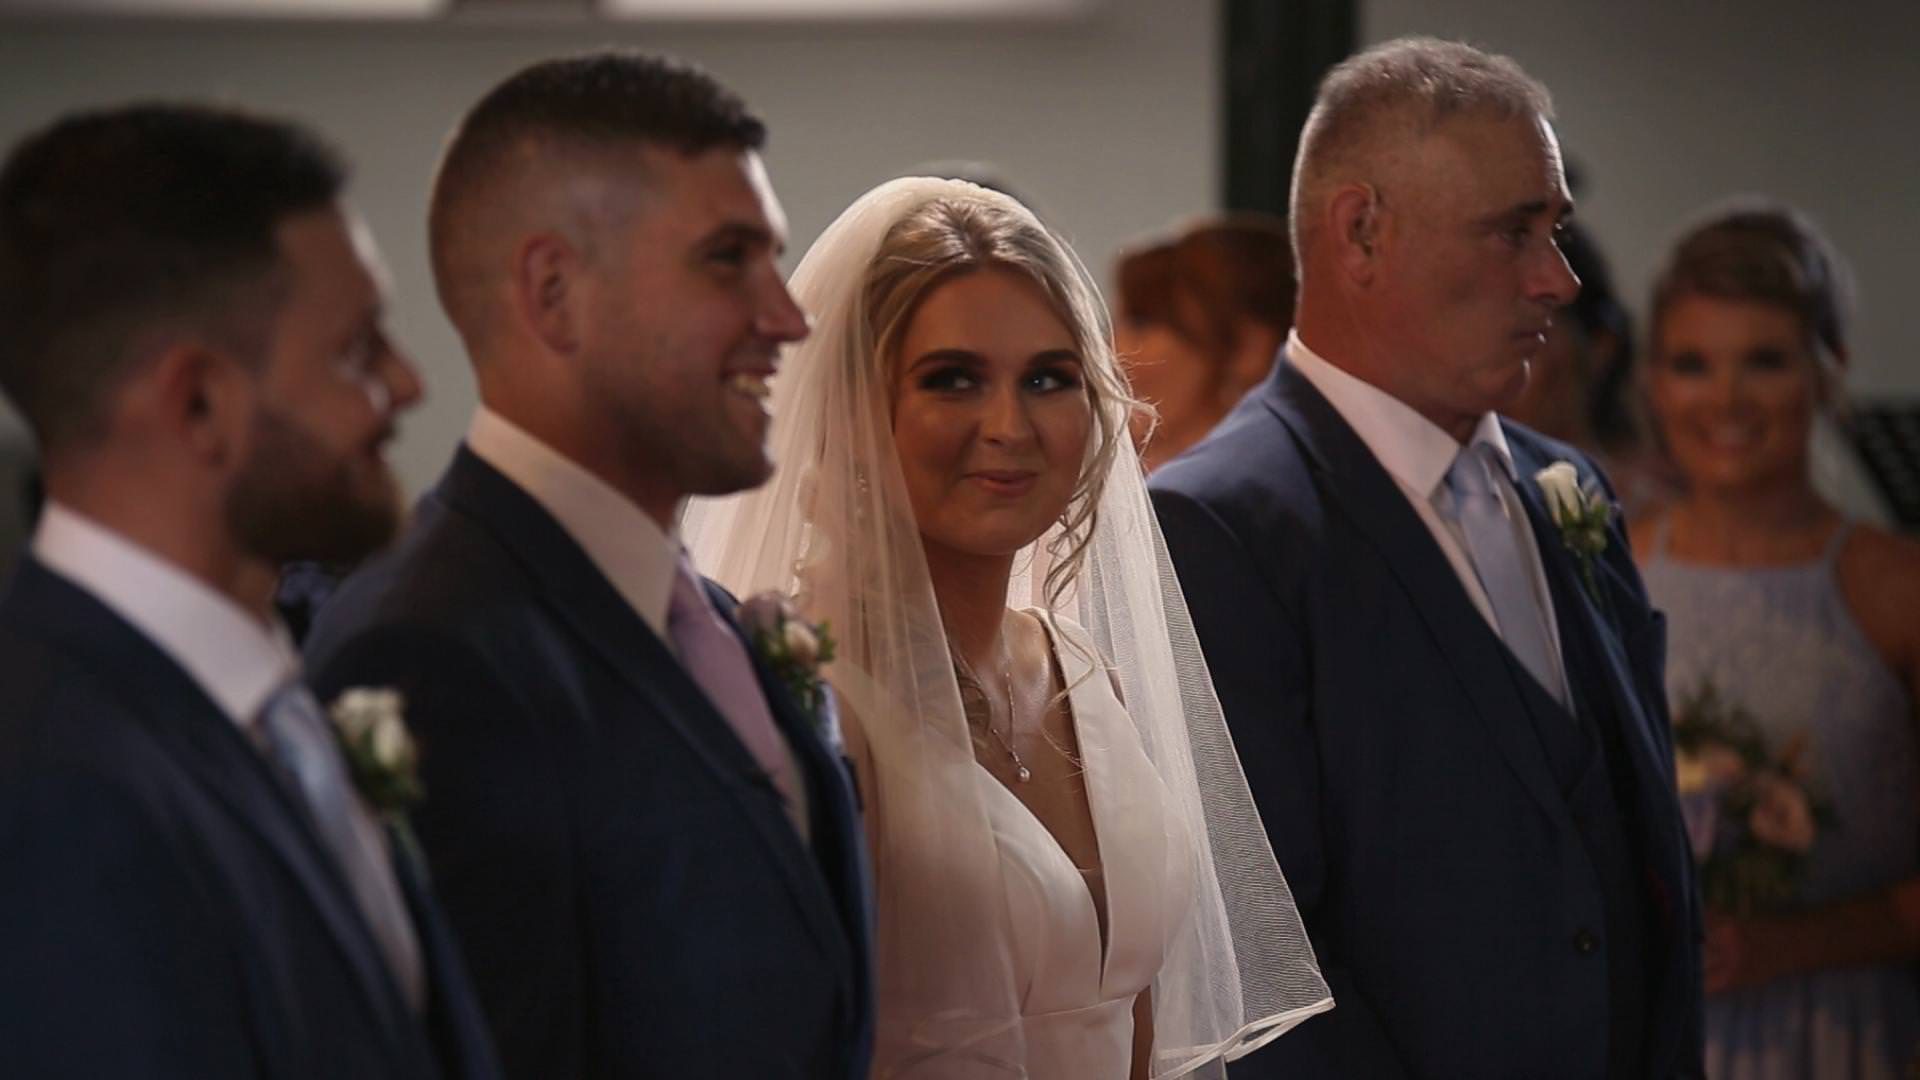 a wedding video still of a bride looking at her groom and smiling during the ceremony at St Johns church